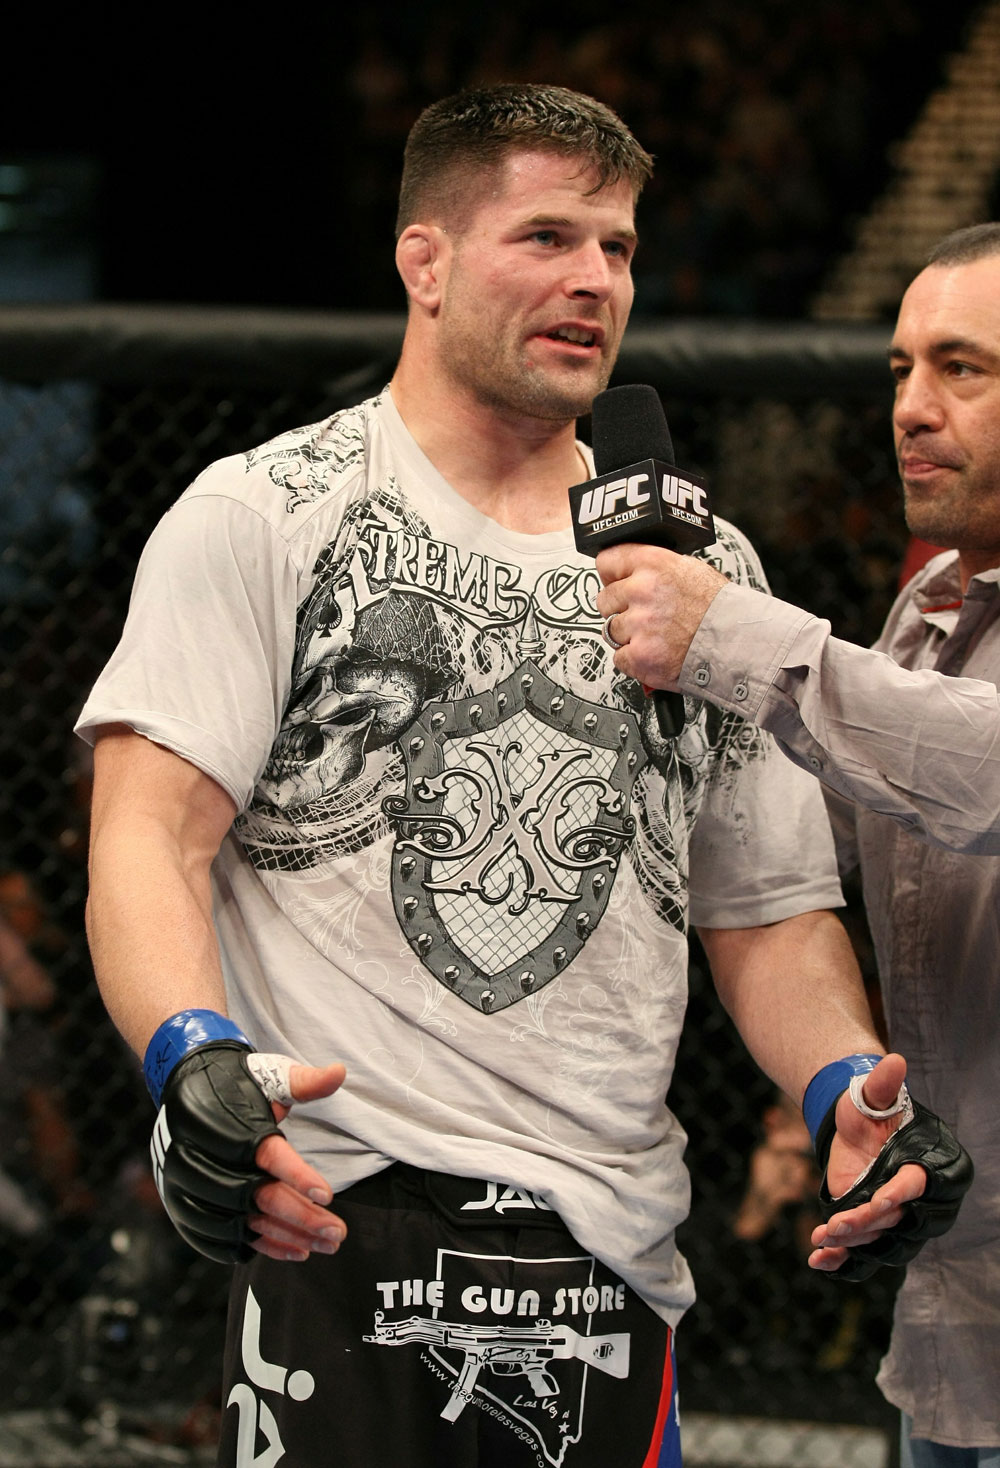 UFC 125: Brian Stann after his victory over Chris Leban.